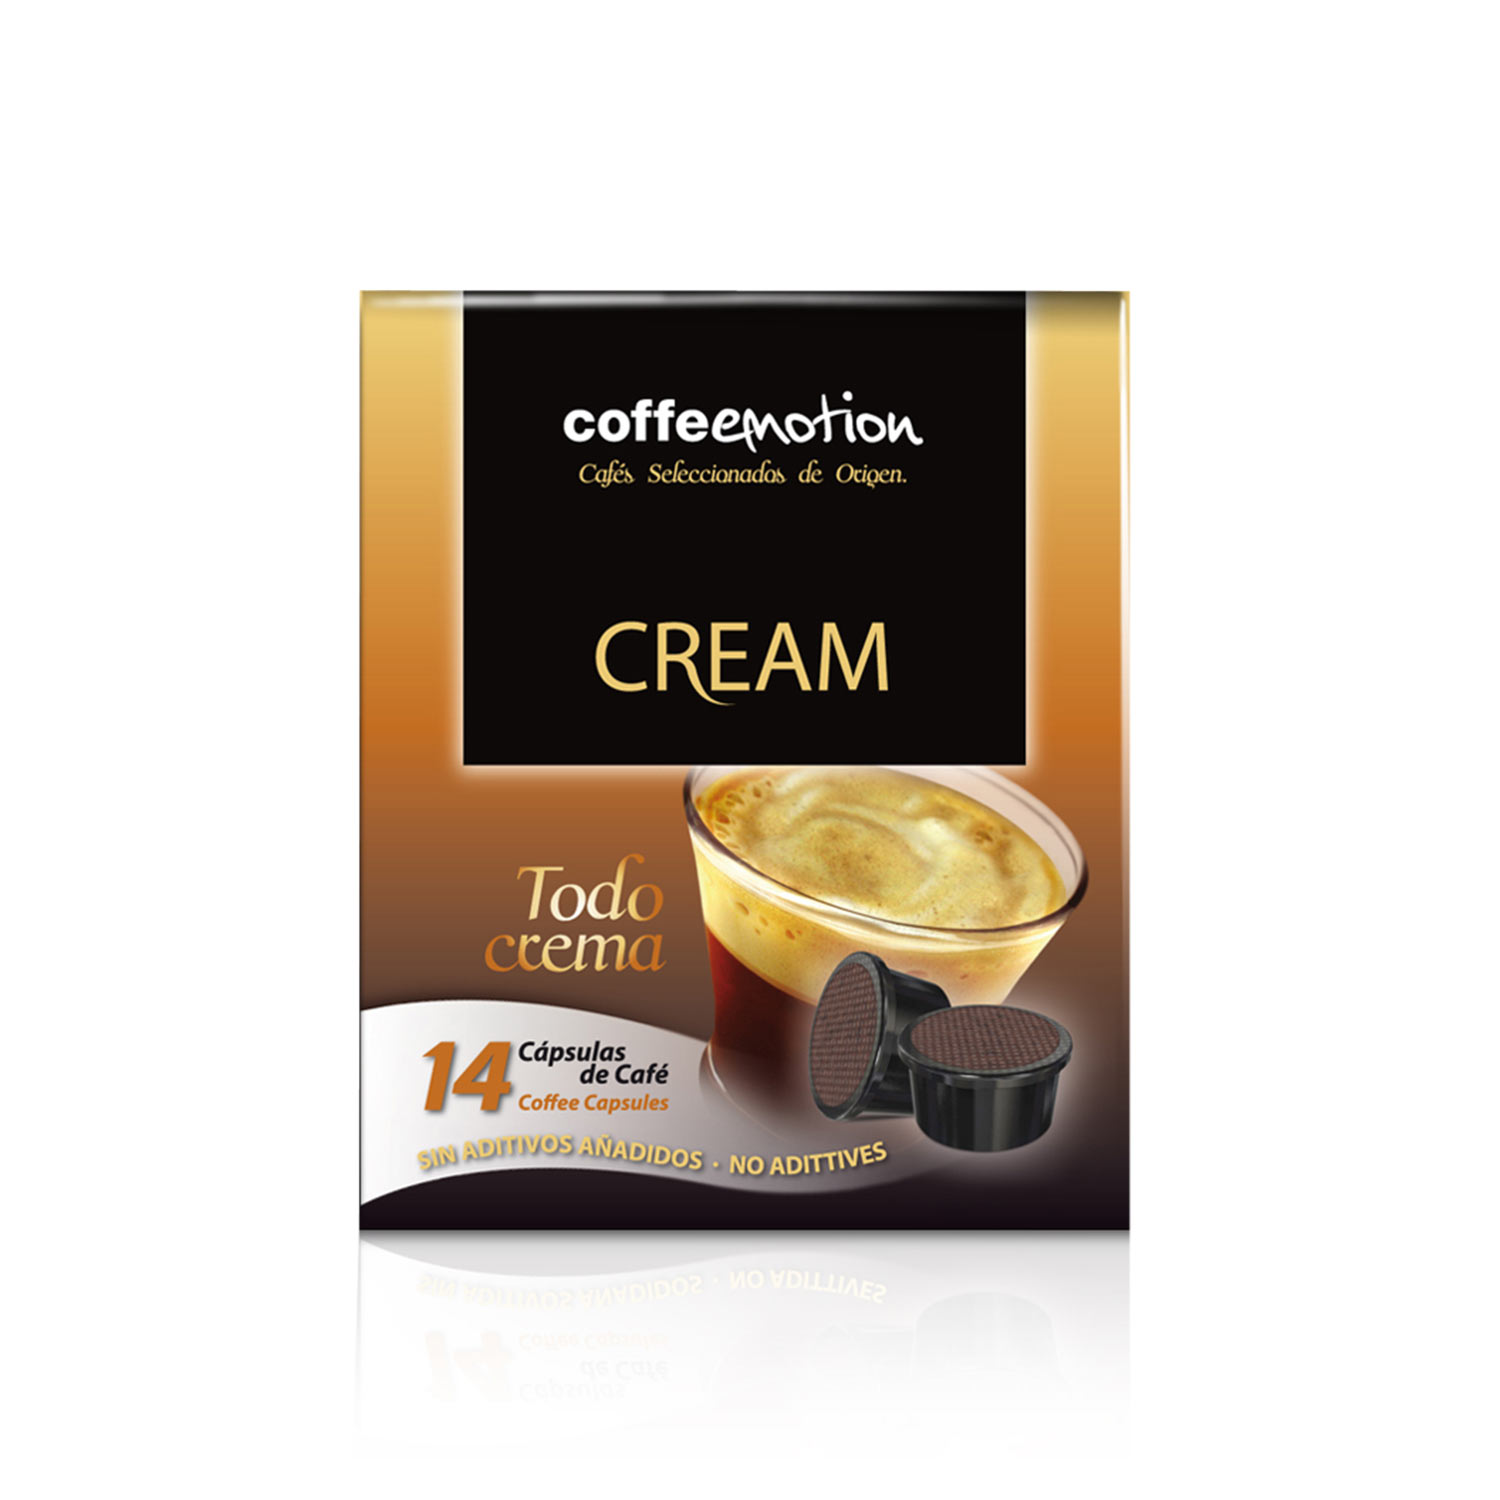 Cápsulas de café Coffeemotion Cream (14u)